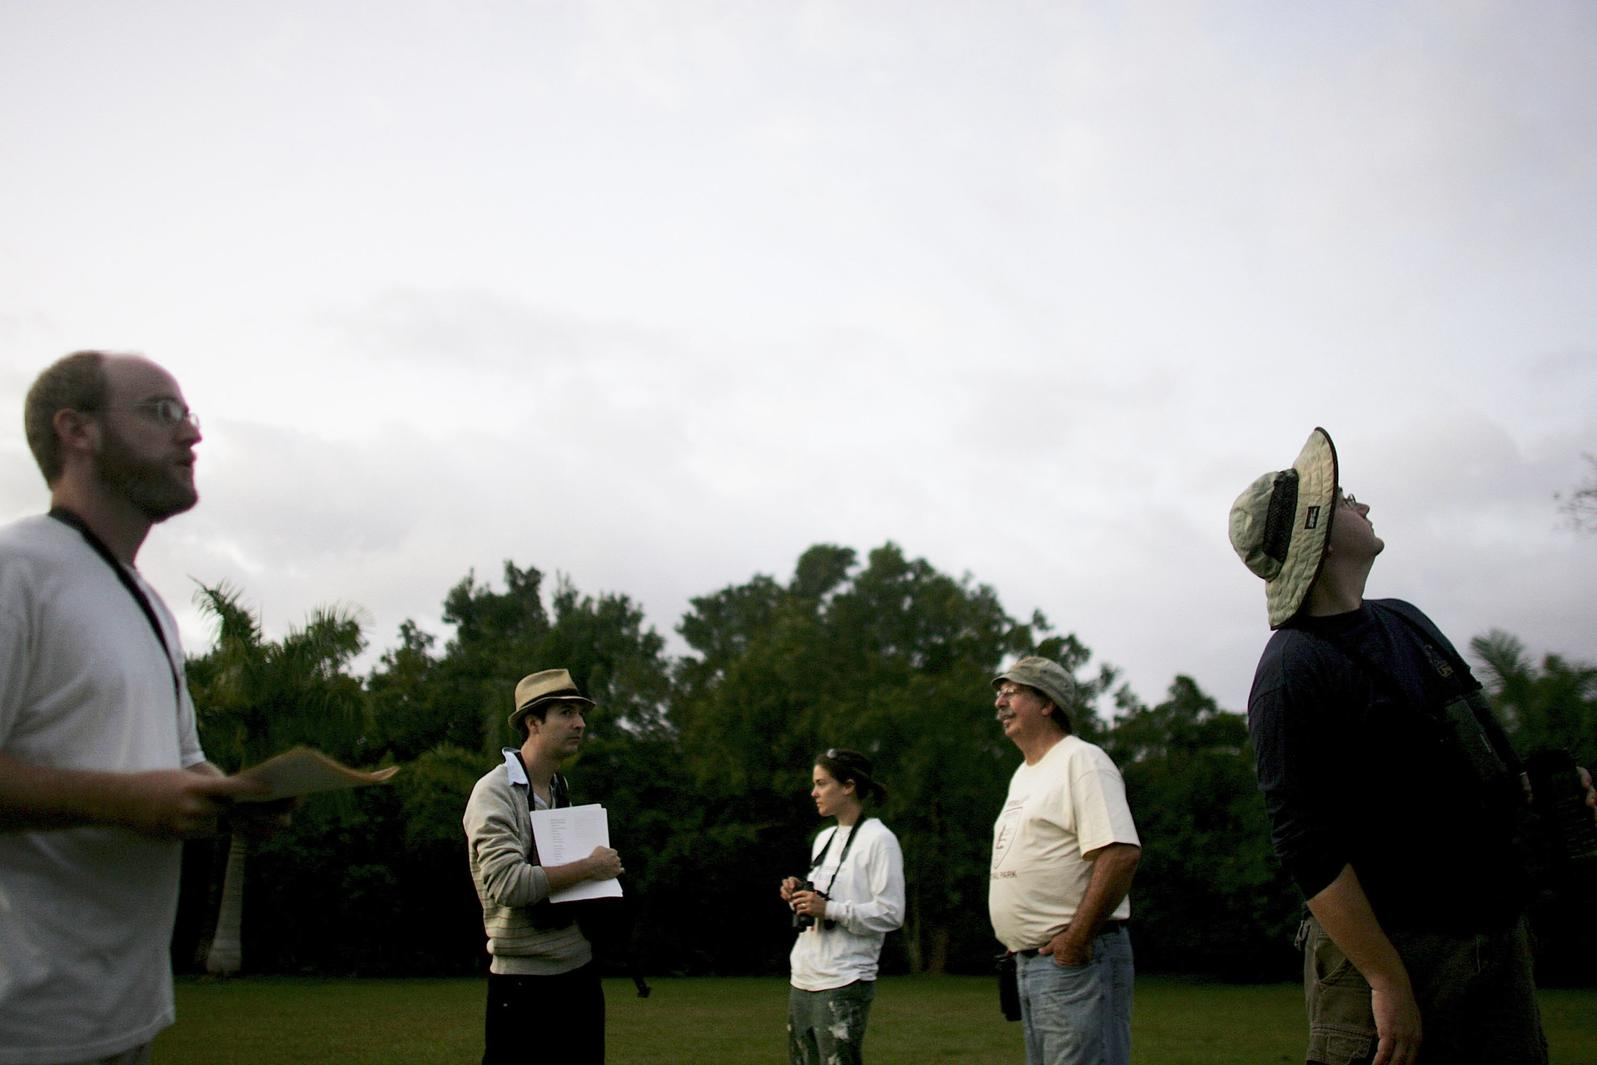 Christmas Bird Count participants looking and listening for birds in Florida's Everglades National Park. Joe Raedle/Getty Images